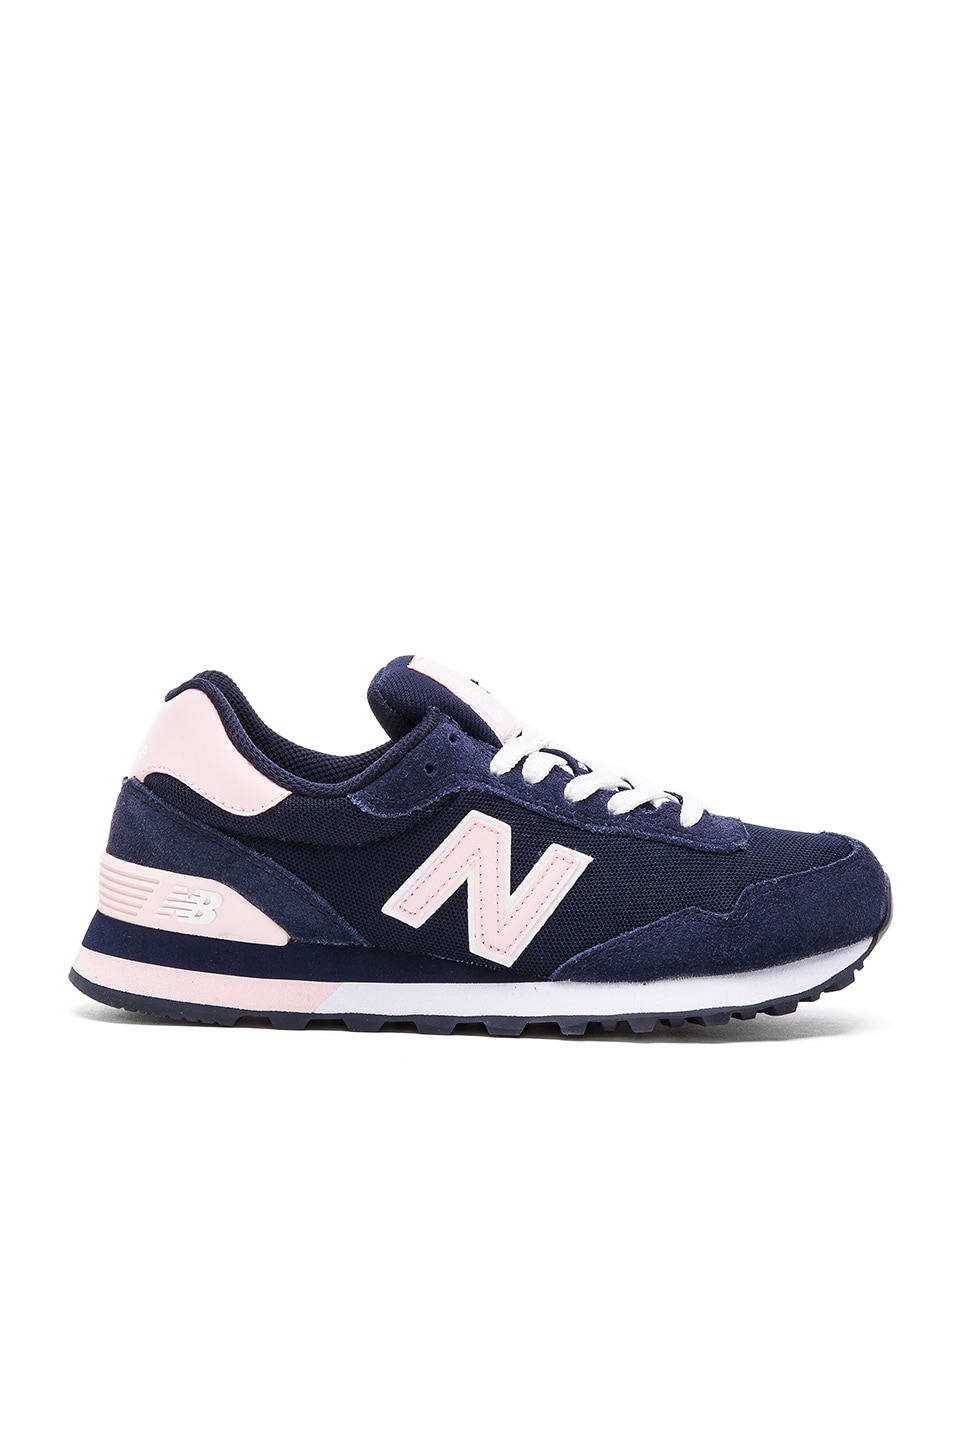 New Balance Classics Pique Polo Collection Sneaker in Navy & Pink